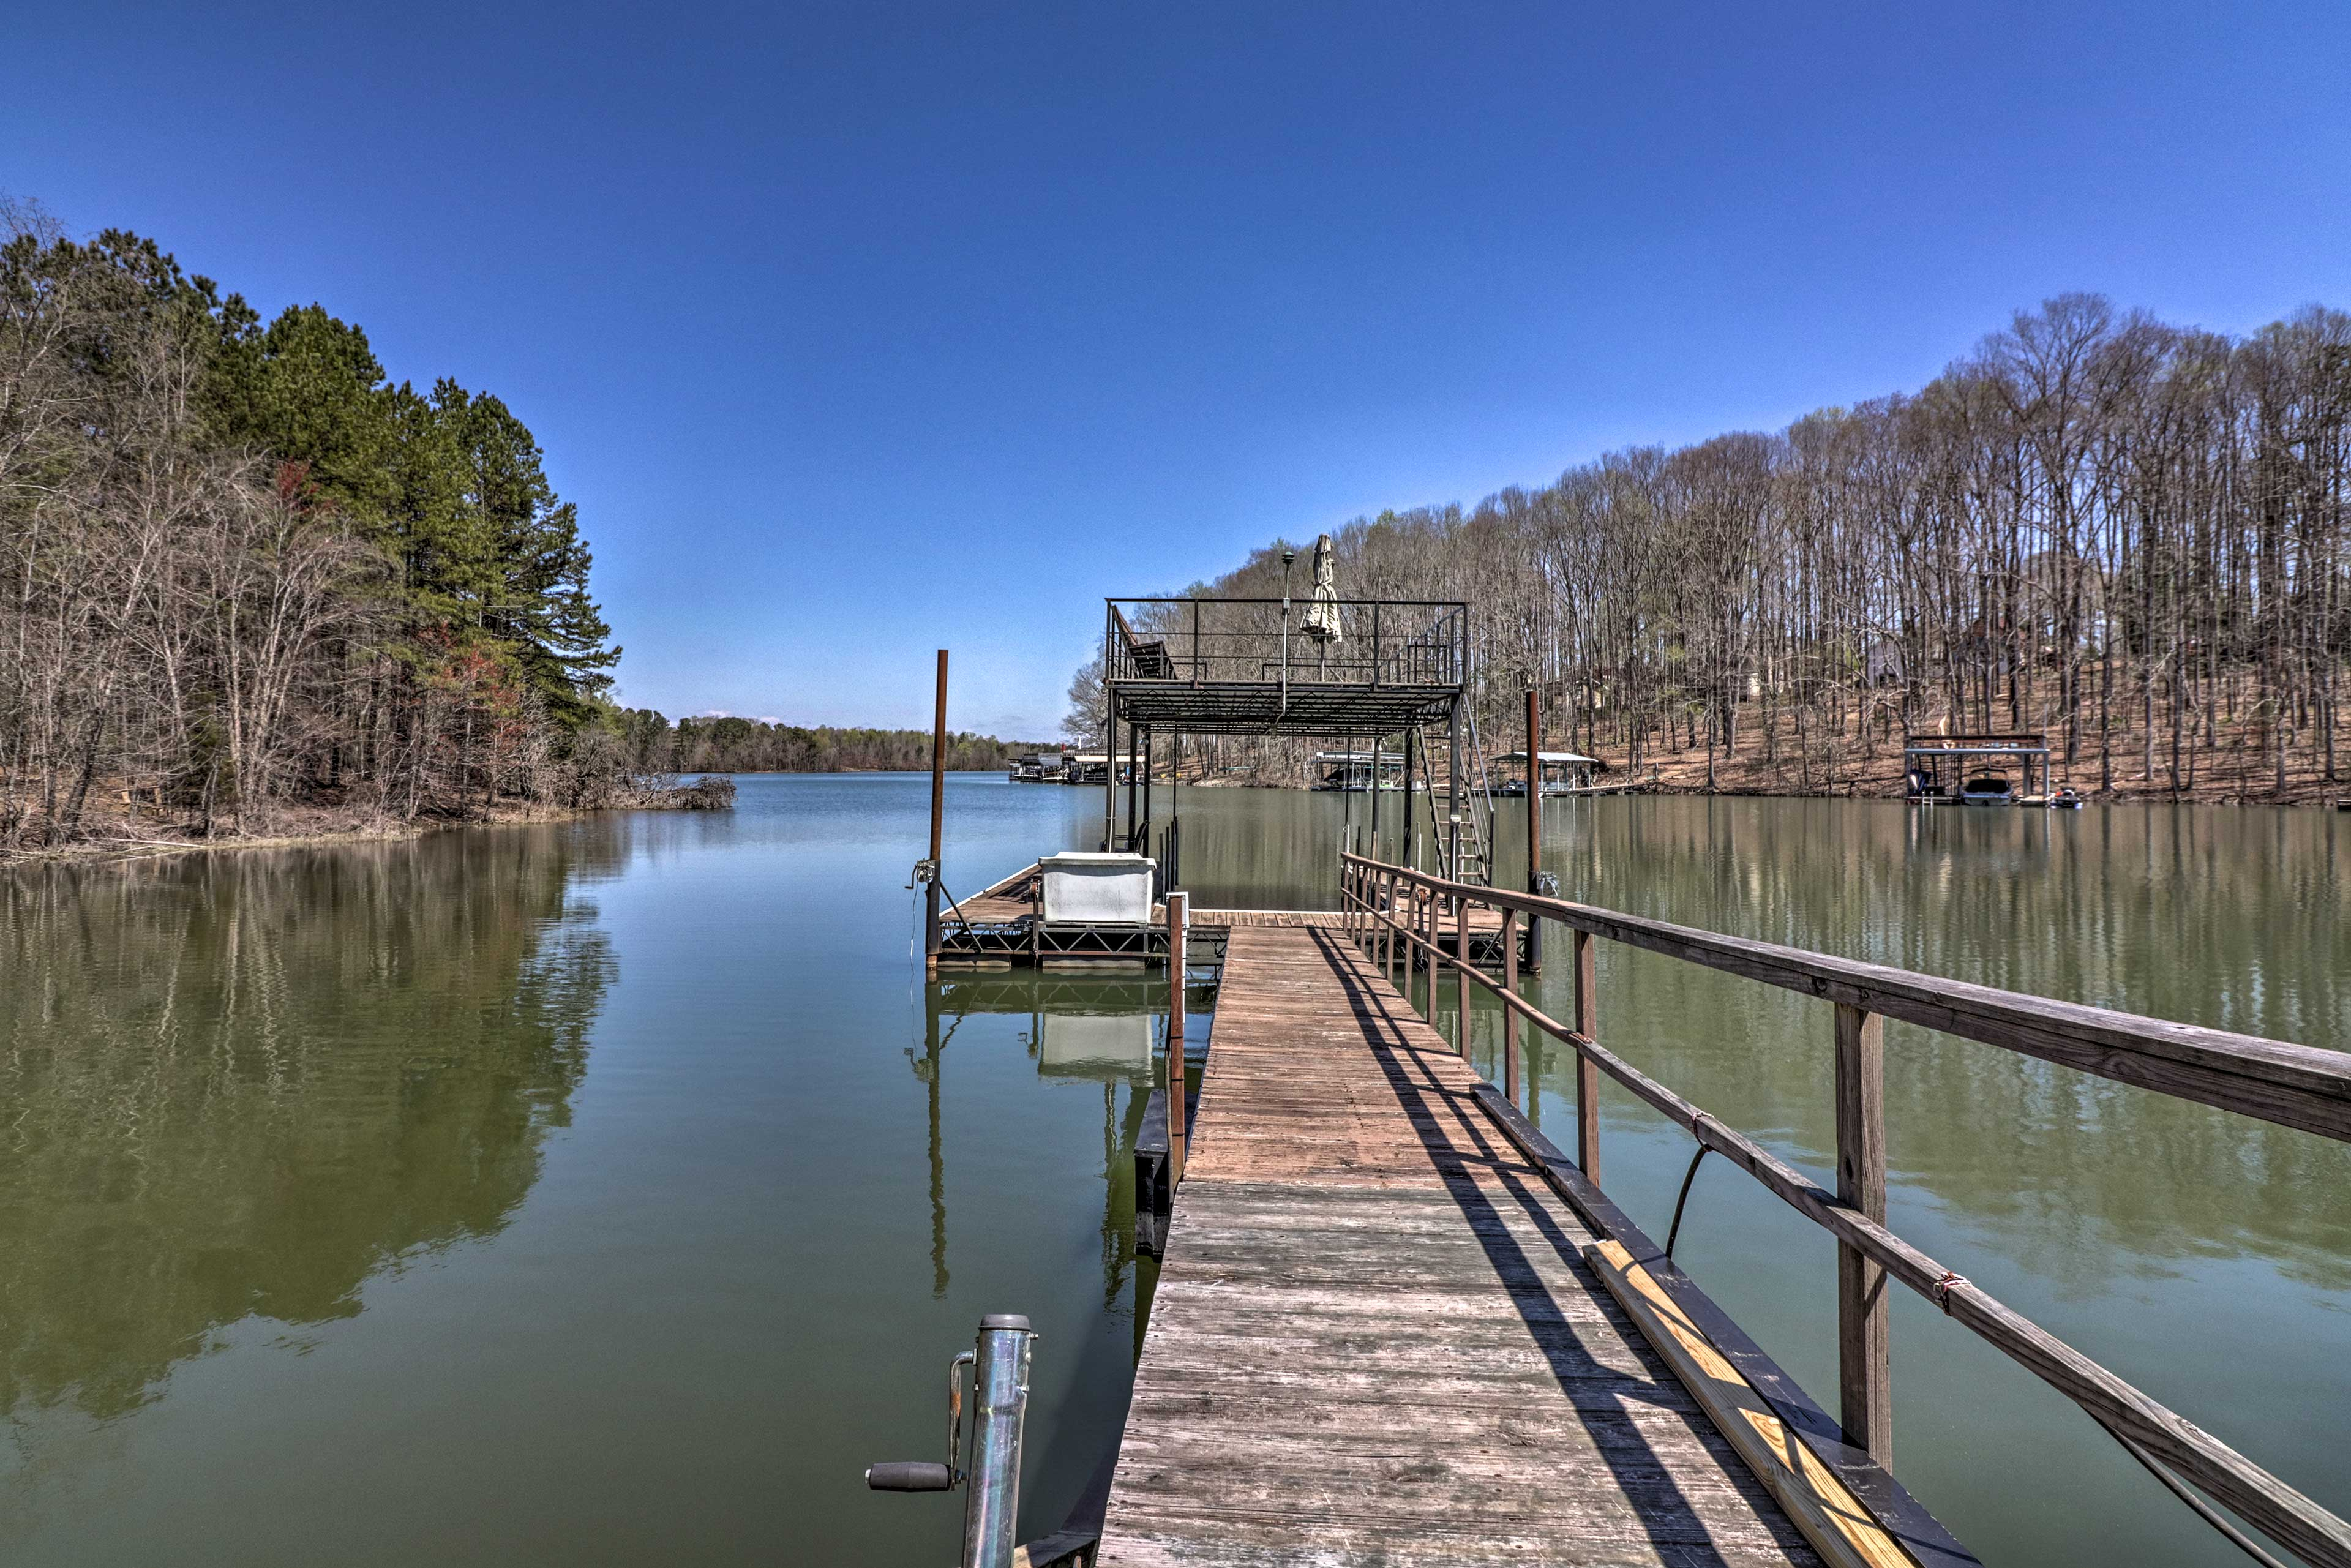 Guests will enjoy access to a private dock with a sunbathing deck.